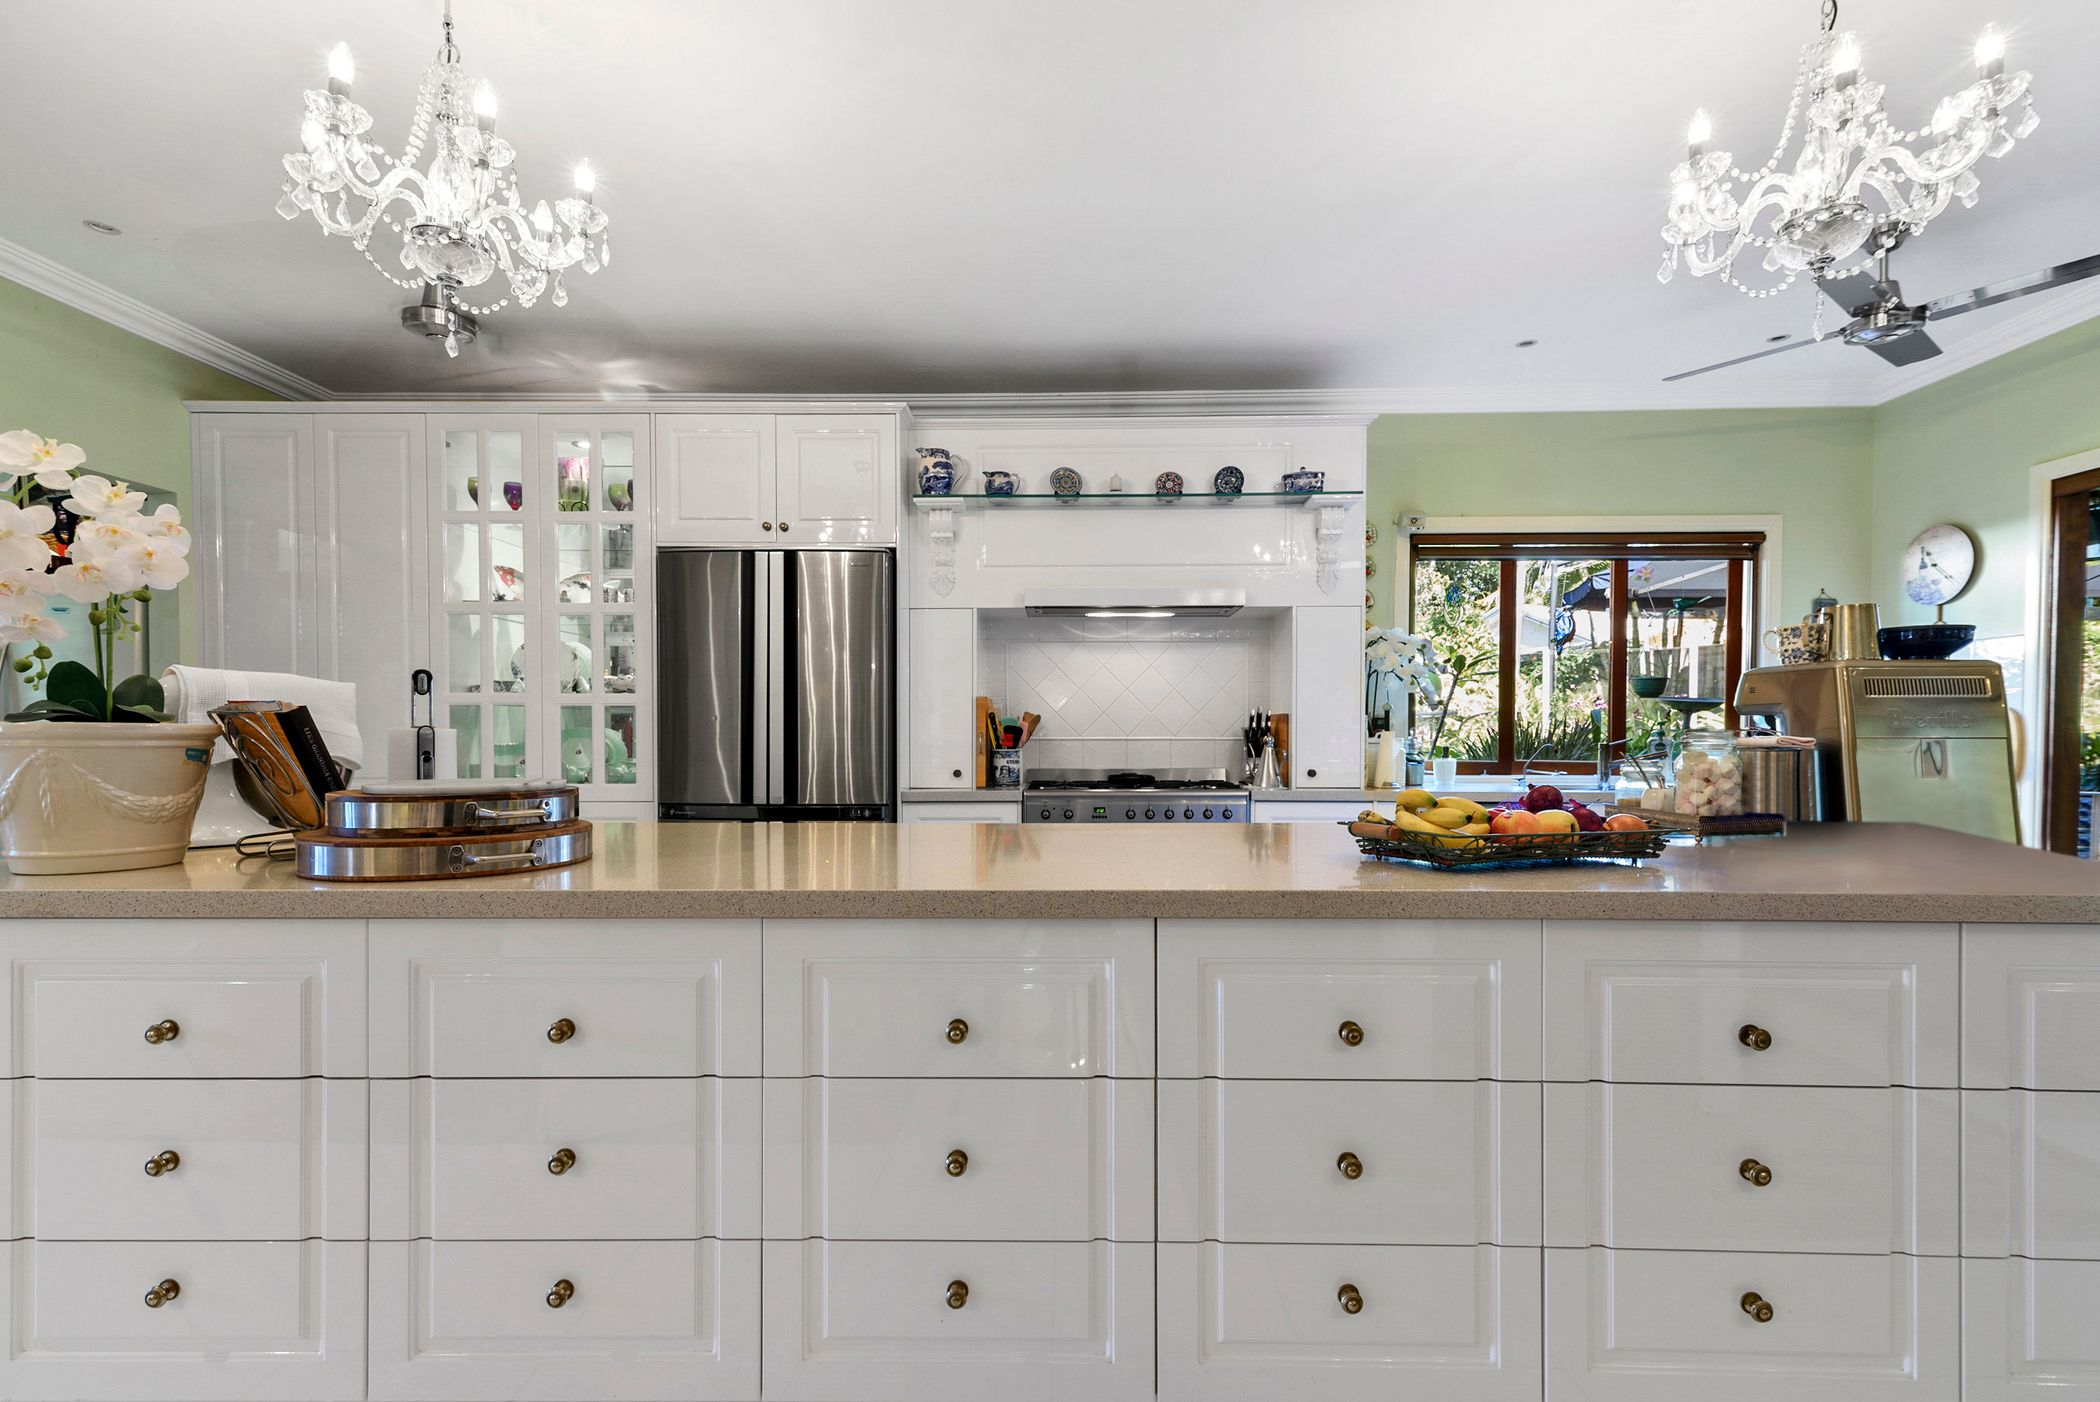 Real Estate Photography and Video